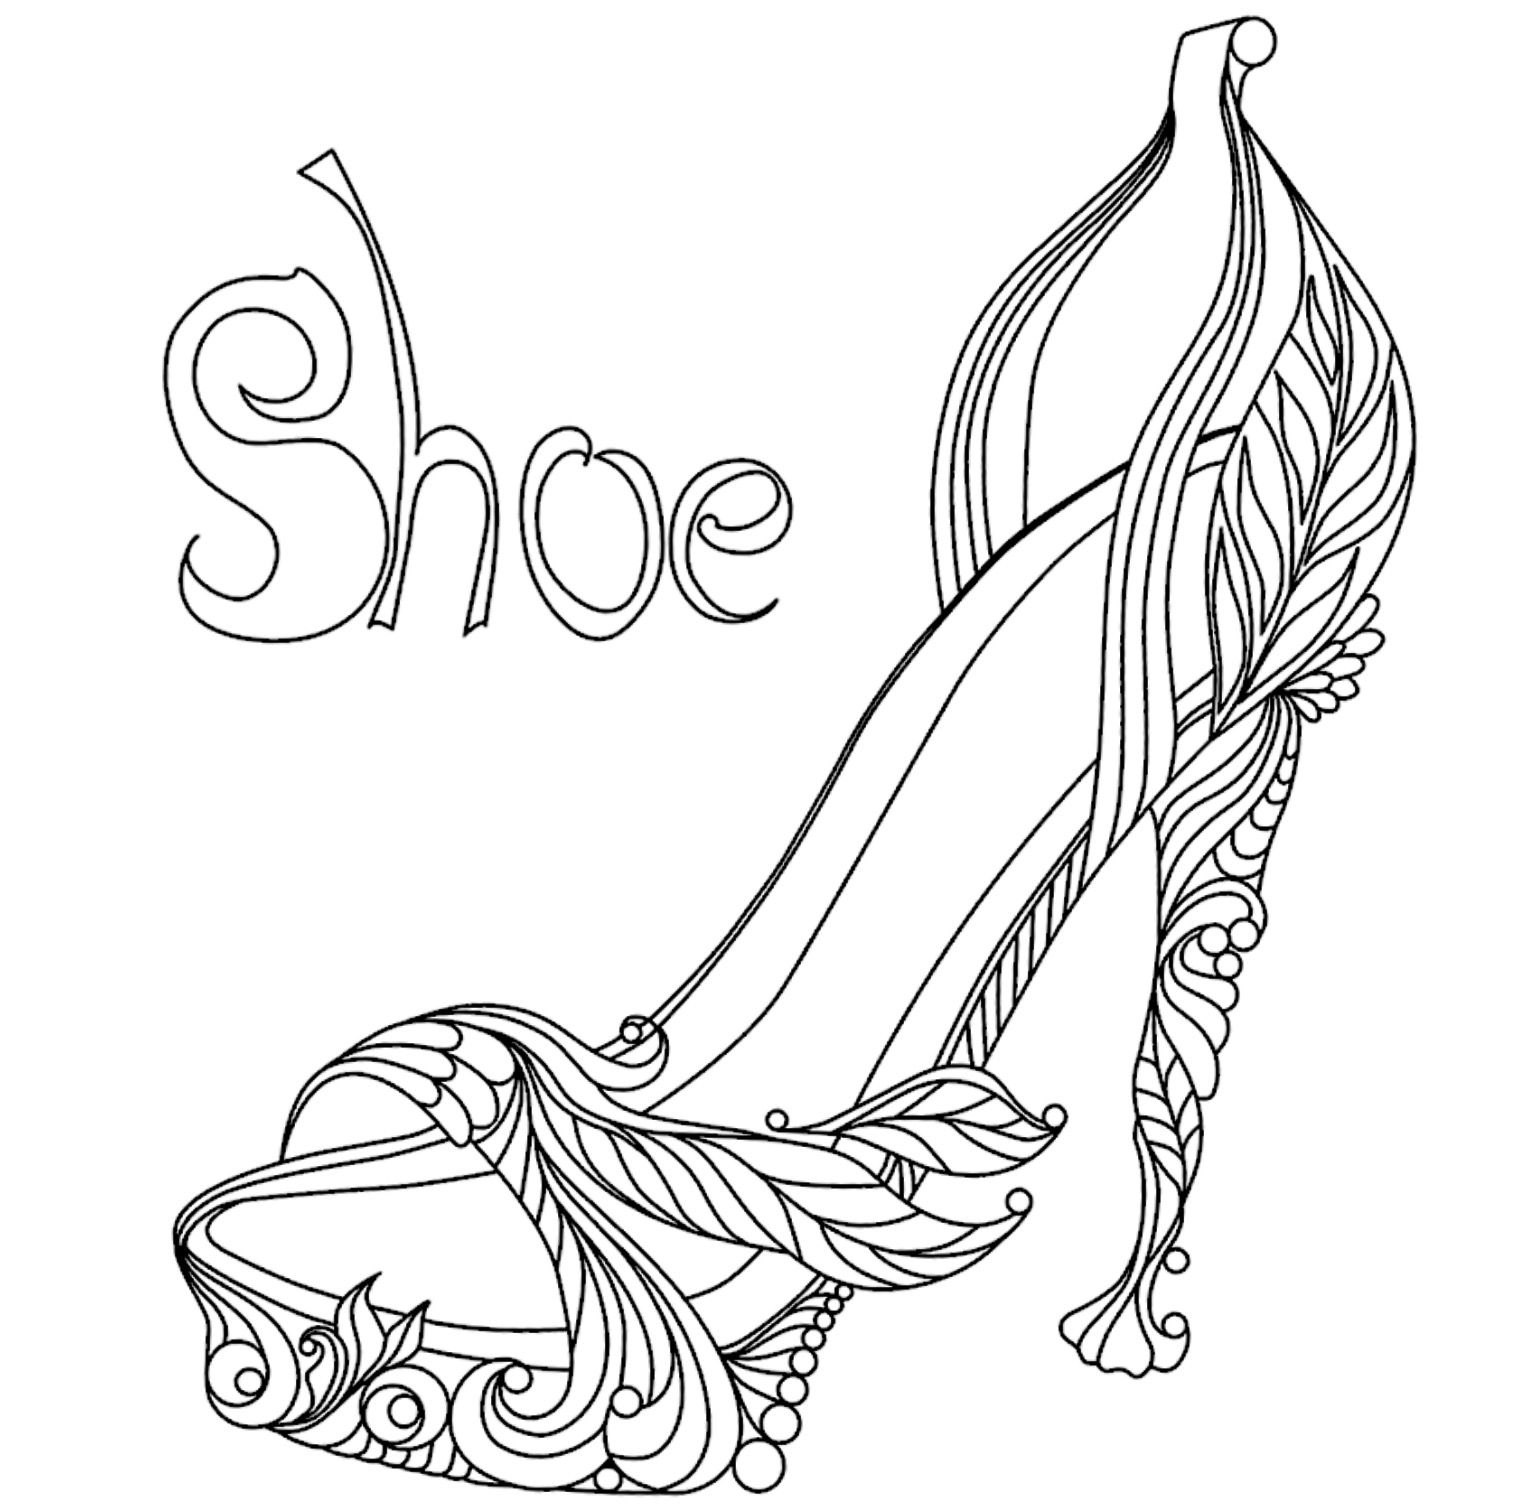 Shoe Coloring Page Shoe Template Coloring Pages Coloring Books